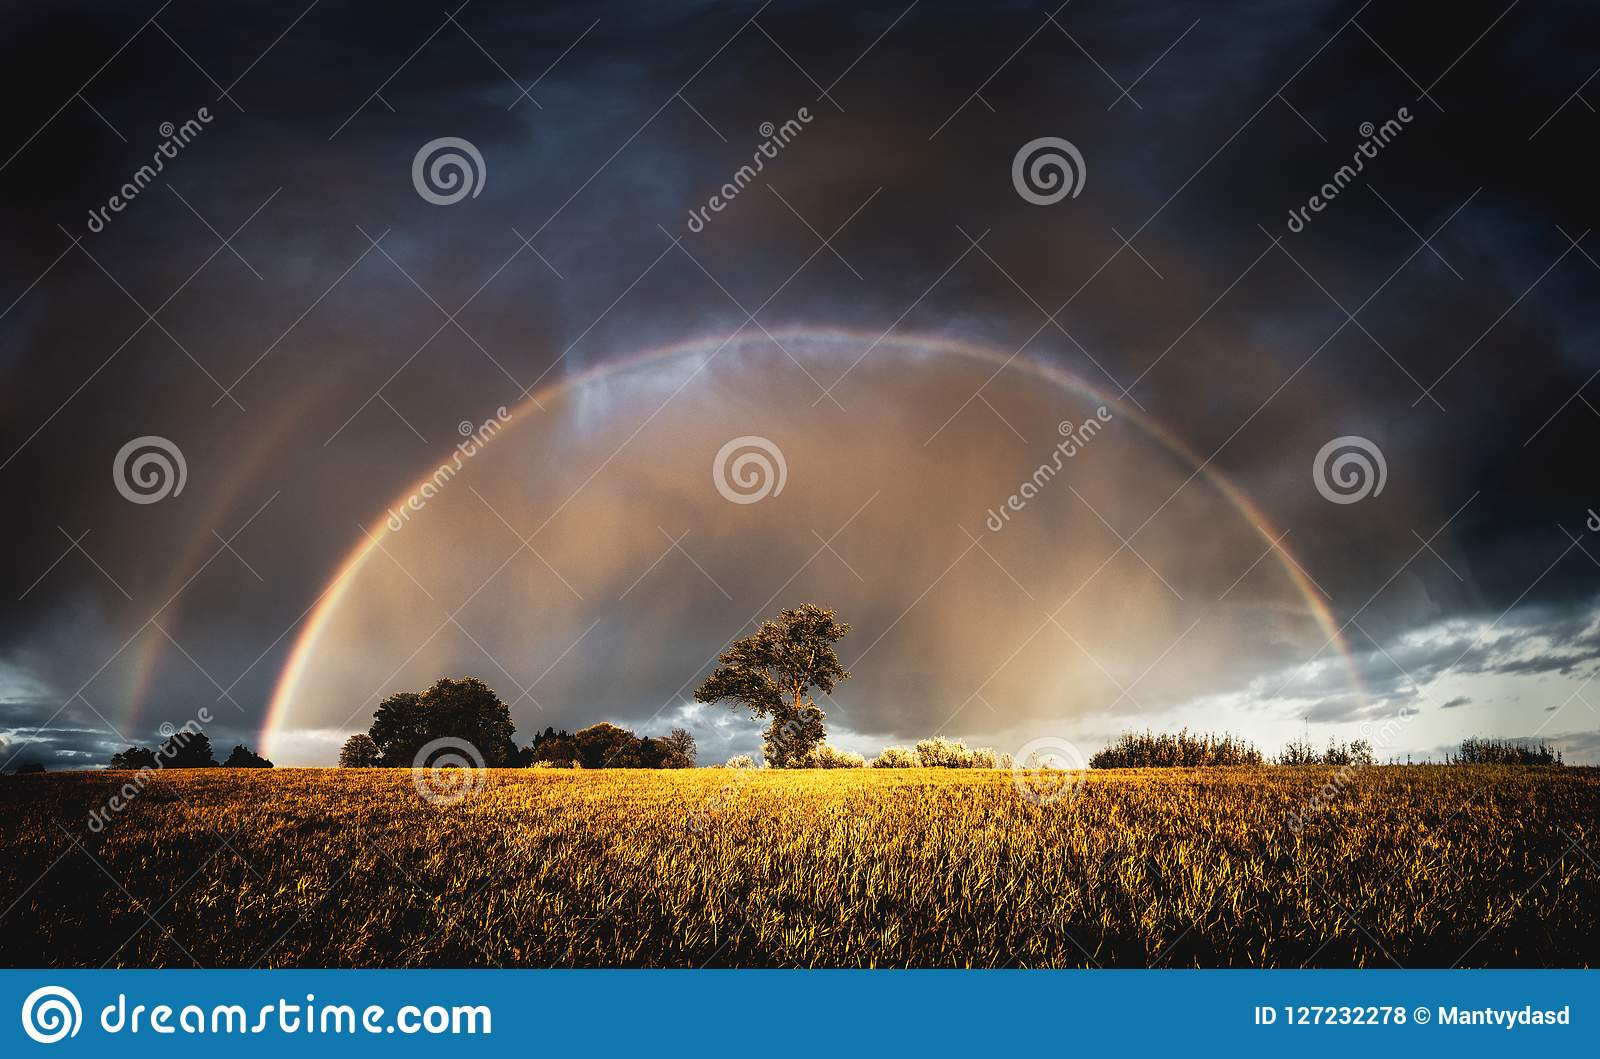 Autumn rain in the evening and full rainbow in the fields above trees